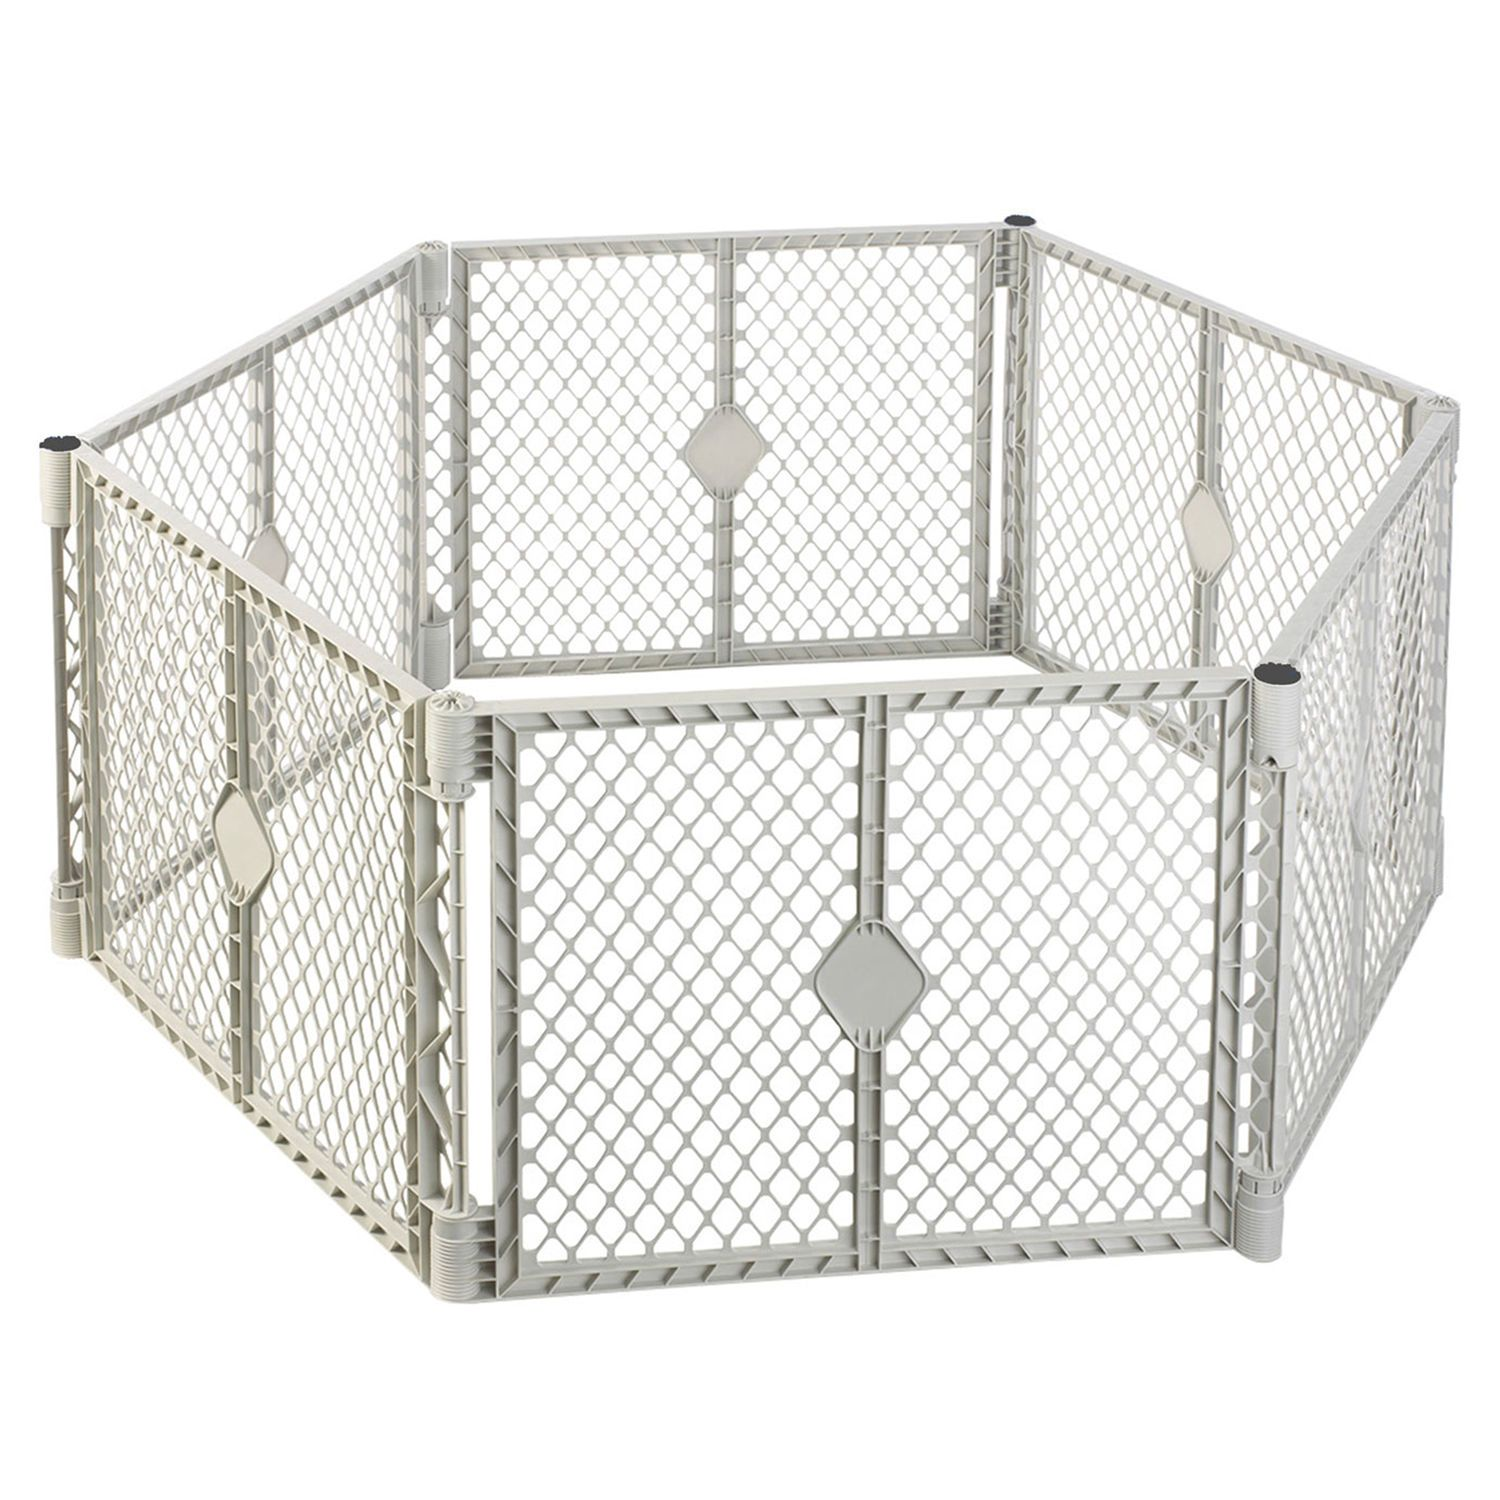 Infant Portable Playard Play Pen Pet Outdoor Gate Baby Yard Travel Playpen Pack